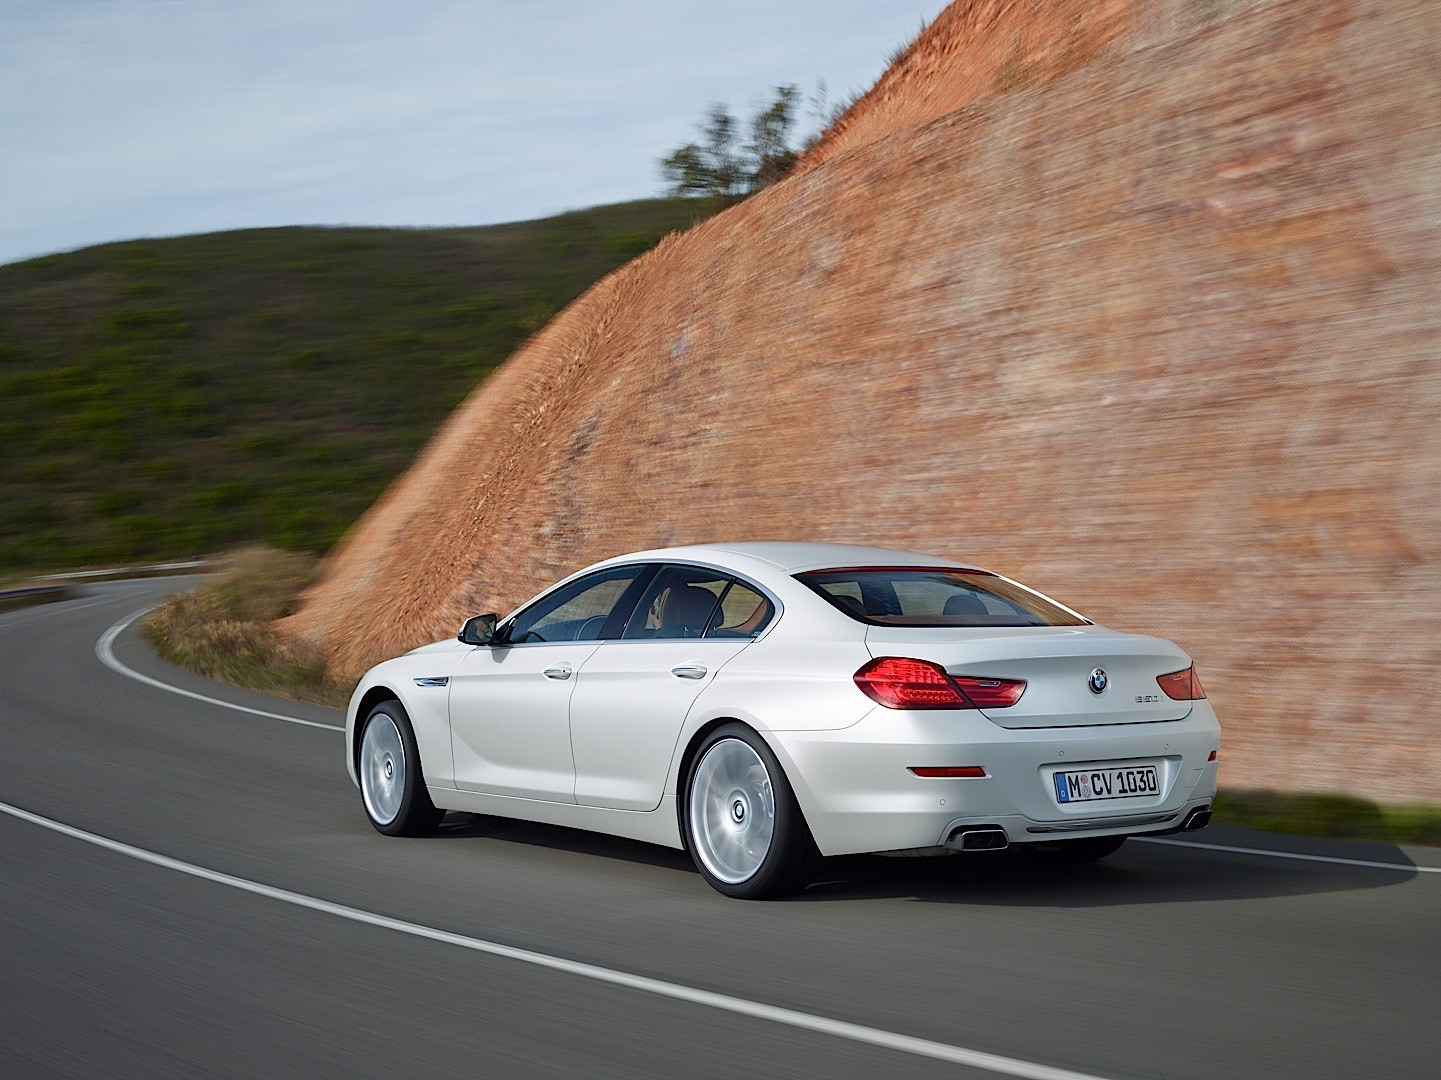 BMW bmw 6 gran coupe 2015 : BMW 6 Series Gran Coupe LCI (F06) specs - 2015, 2016, 2017, 2018 ...